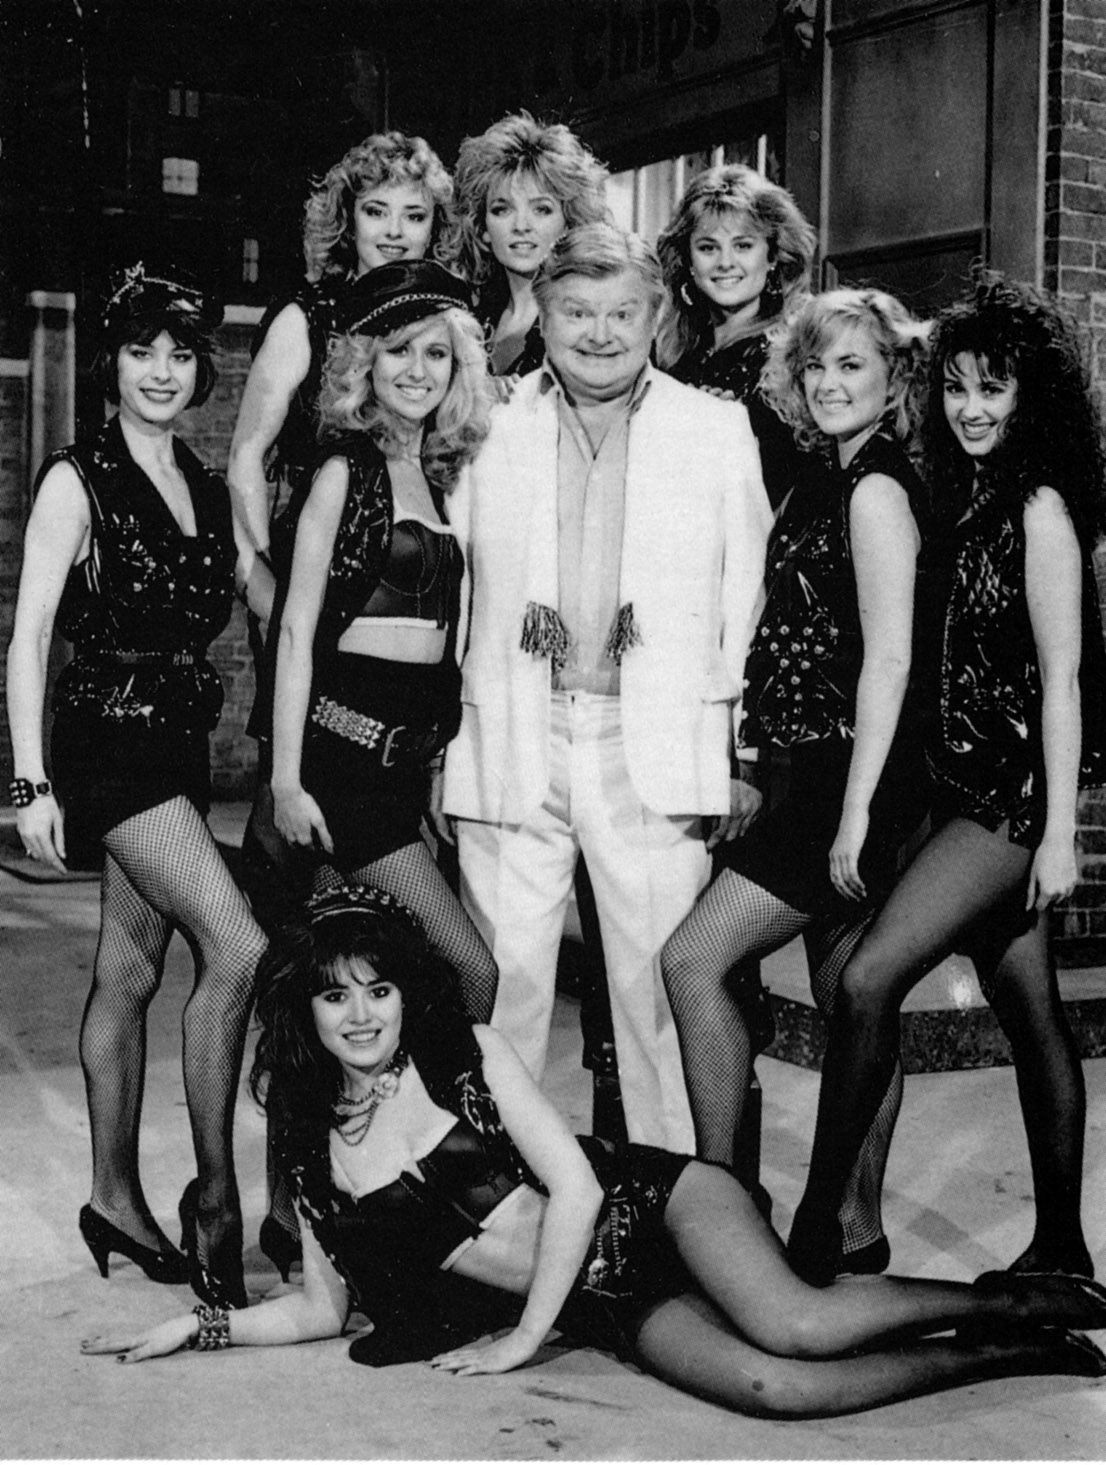 Benny Hill - before I was to discovered ANY of the other Brit Coms over the decades, I would sit and watch this show with Dad, laughing at things I didnt understand